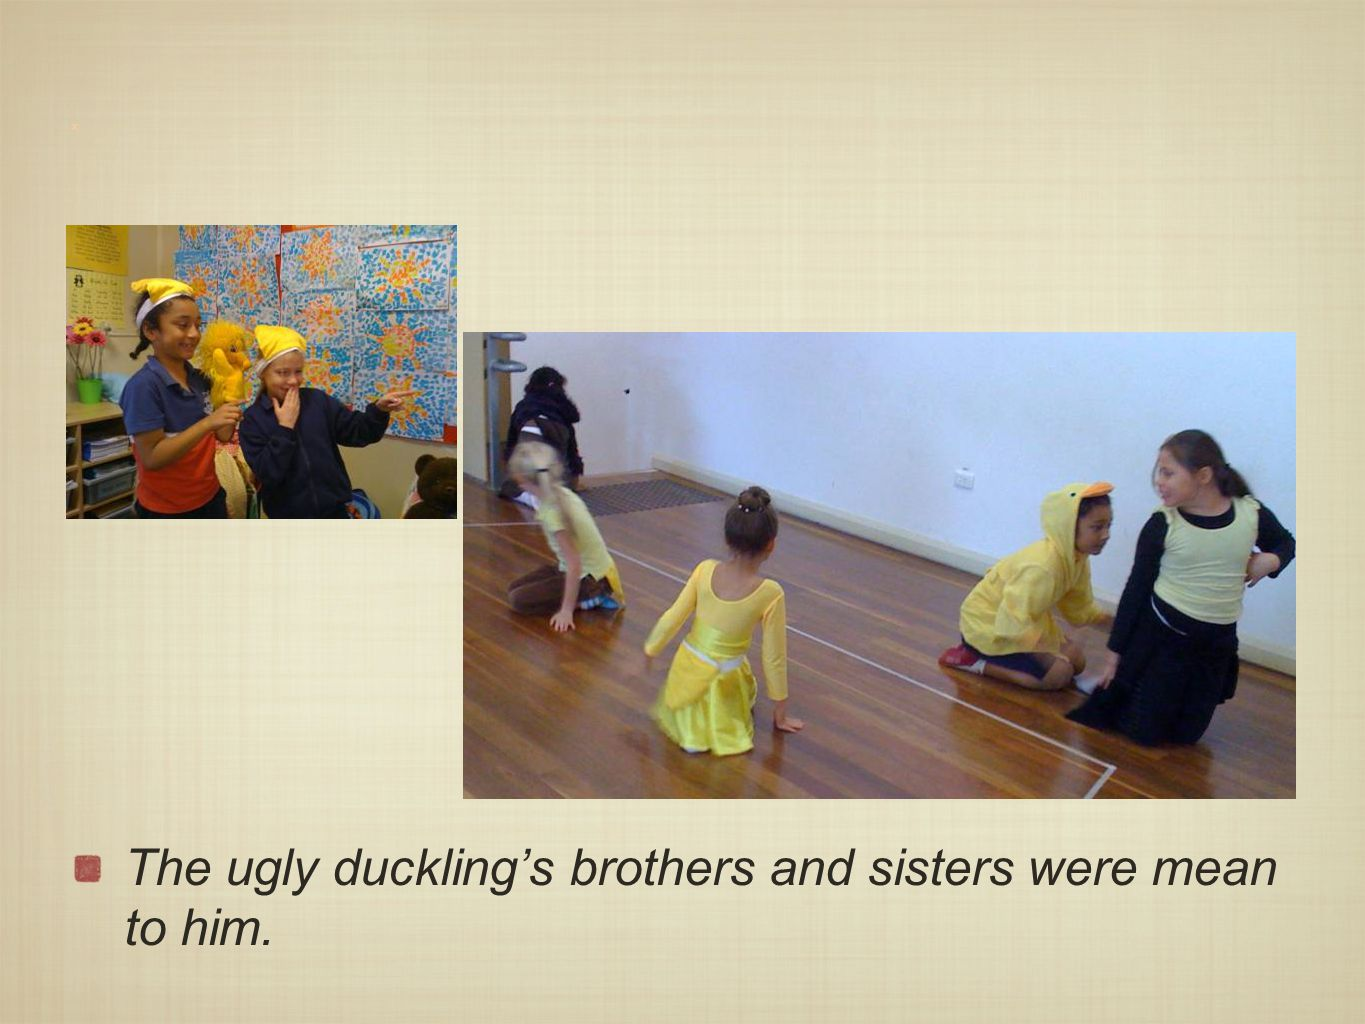 x The ugly duckling's brothers and sisters were mean to him.